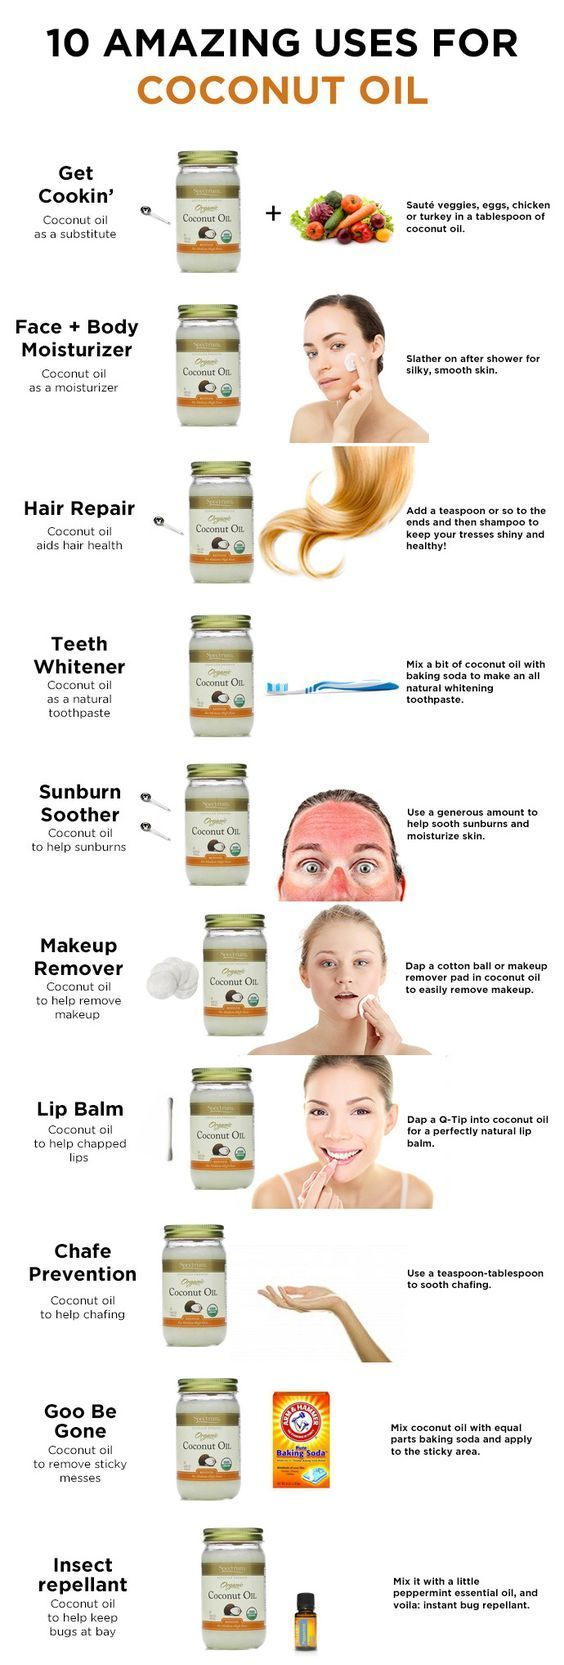 The amazing uses of coconut oil Hair Repair, makeup remover, SUNBURN SOOTHER (I can attest to that!), Lip Balm, insect repellent, goo be gone, chafe prevention and yes... cooking! Great for men and women!  Benefits coconut oil!  #sunburnsoother #coconutoil #naturaltreatments